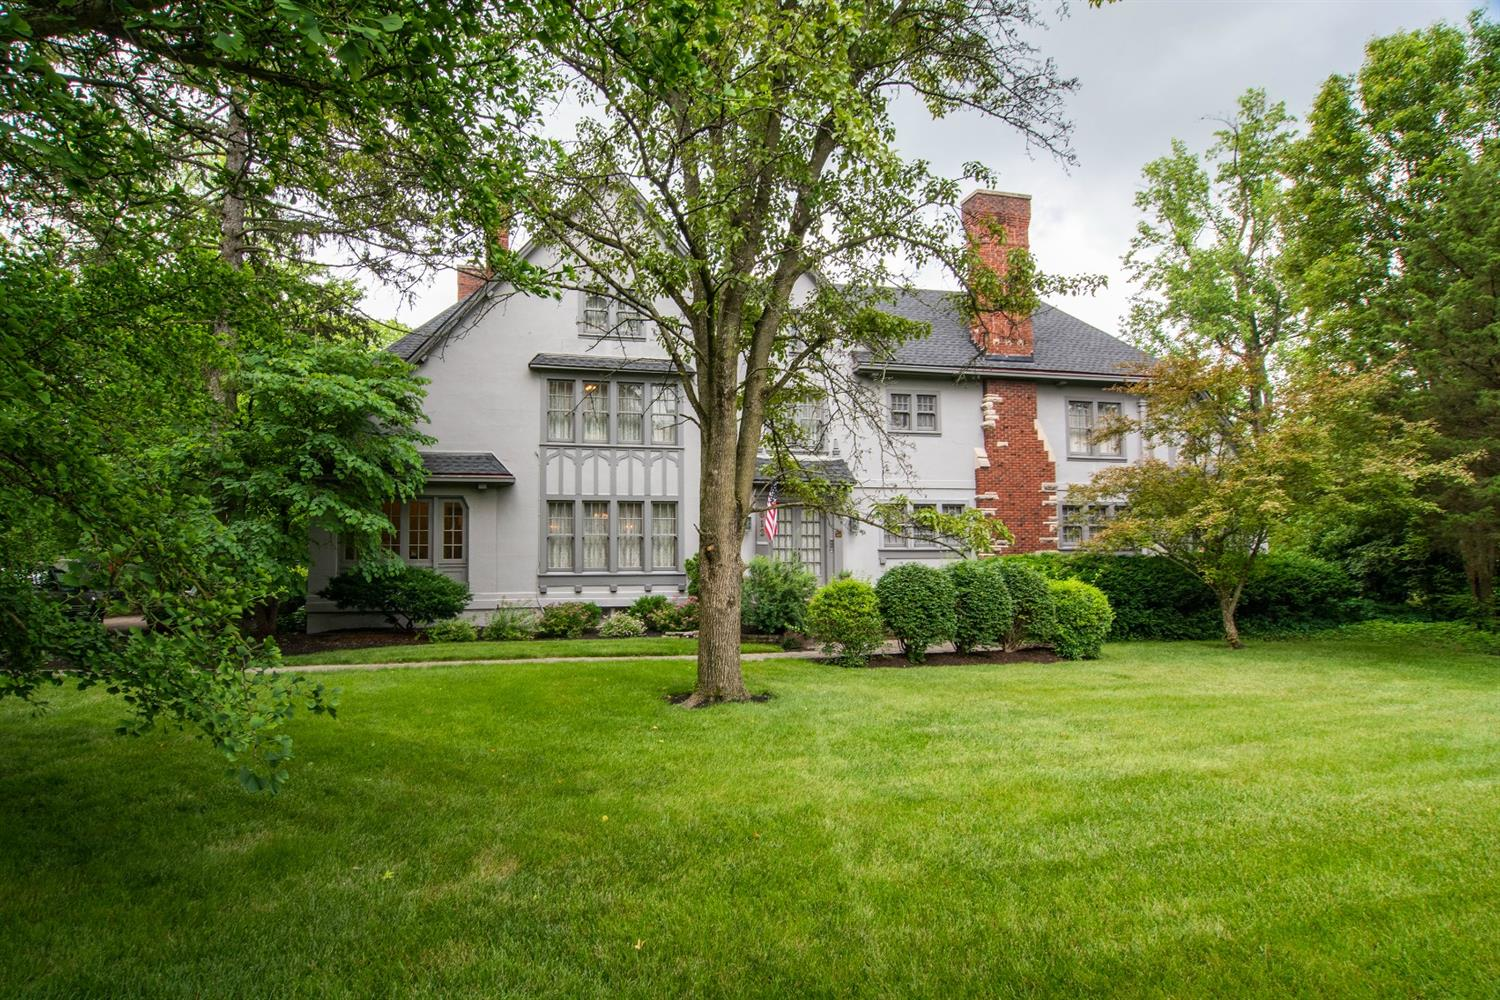 EXQUISITE! APPROX.8,500SQFT! 3STORY,7BD,4.2BATH,FULL POURED BASEMENT W/WO! 2CAR OVERSIZED DETACHED GARAGE! .991ACRE! PRIVATE PARK LIKE SETTING! GRAND 2STORY FOYER W/VESTIBULE! TOTALLY RENOVATED GOURMET KITCHEN W/2BUTLERS PANTRIES,CUSTOM BUILT AMISH SOFT CLOSE CABINETS,TILE COUNTERTOPS & BACKSPLASH,STAINLESS STEEL APPLIANCES & WO TO SERVICE PORCH! BREAKFAST RM! HUGE FORMAL DINING RM! FORMAL LIVING RM W/ROOKWOOD FP & ORIGINAL CUSTOM BUILT-INS! 4SEASONS RM W/WO TO PORCH! 1ST FLR DEN W/BEAMED CEILING & FP! 1ST FLR SUITE W/BD,FULL BATH,LIVING RM,KITCHEN & WO TO PORCH! 2ND FLR MASTER  W/2WALK-IN CLOSETS,WO TO BALCONY & ADJOINING MASTER BATH! LARGE BDRMS & CLOSETS! 2ND FLR W/LAUNDRY & SLEEPING PORCH! 3RD FLR W/2BDRMS,FULL BATH,LIVING RM,KITCHEN & STORAGE(ATTIC&CRAWL SPACE)! LOWER LEVEL W/LAUNDRY,WRKSHP,FUEL&BOILER RM,STORAGE & WO! REFINISHED HARDWD FLRS!ORIGINAL DRS & KNOBS!ROOF2019!COMMERCIAL GUTTERS!BOILER2016!NEWER DRIVEWAY&PAVERS